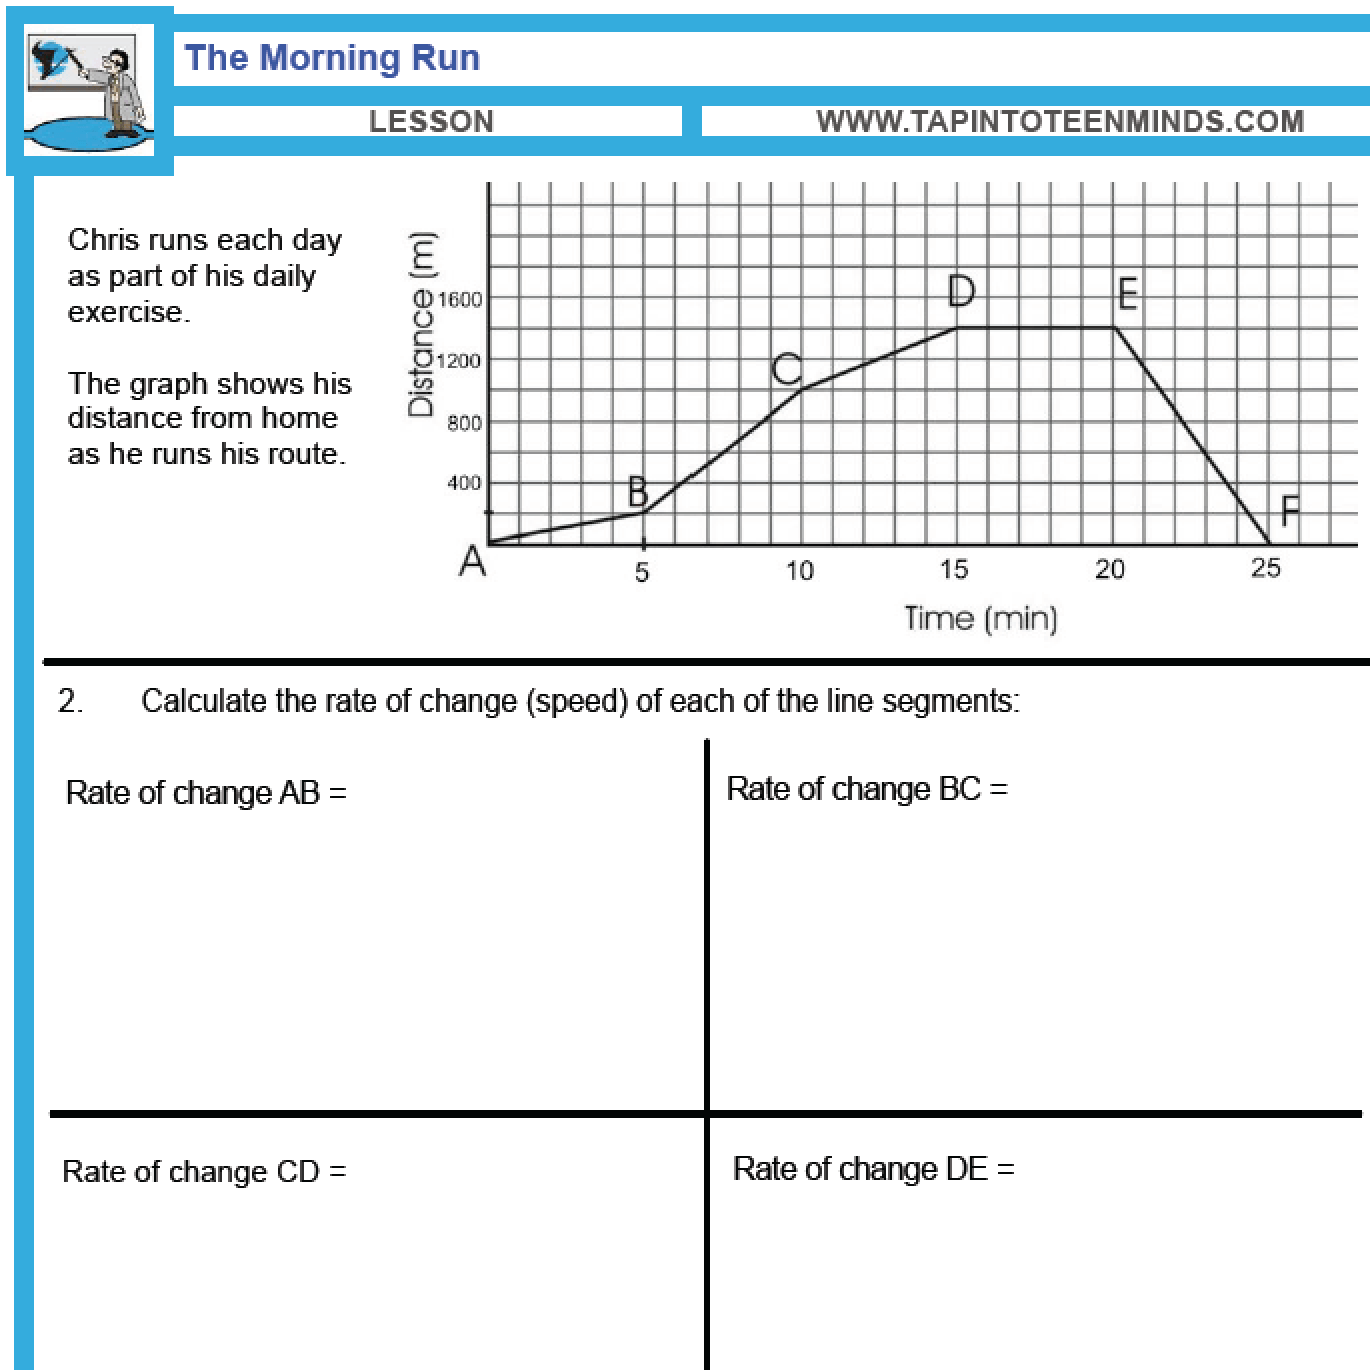 Worksheets Finding Slope From A Graph Worksheet finding slope from a graph worksheet single digit multiplication rise over run worksheets recetasnaturista mfm1p 5 workshee